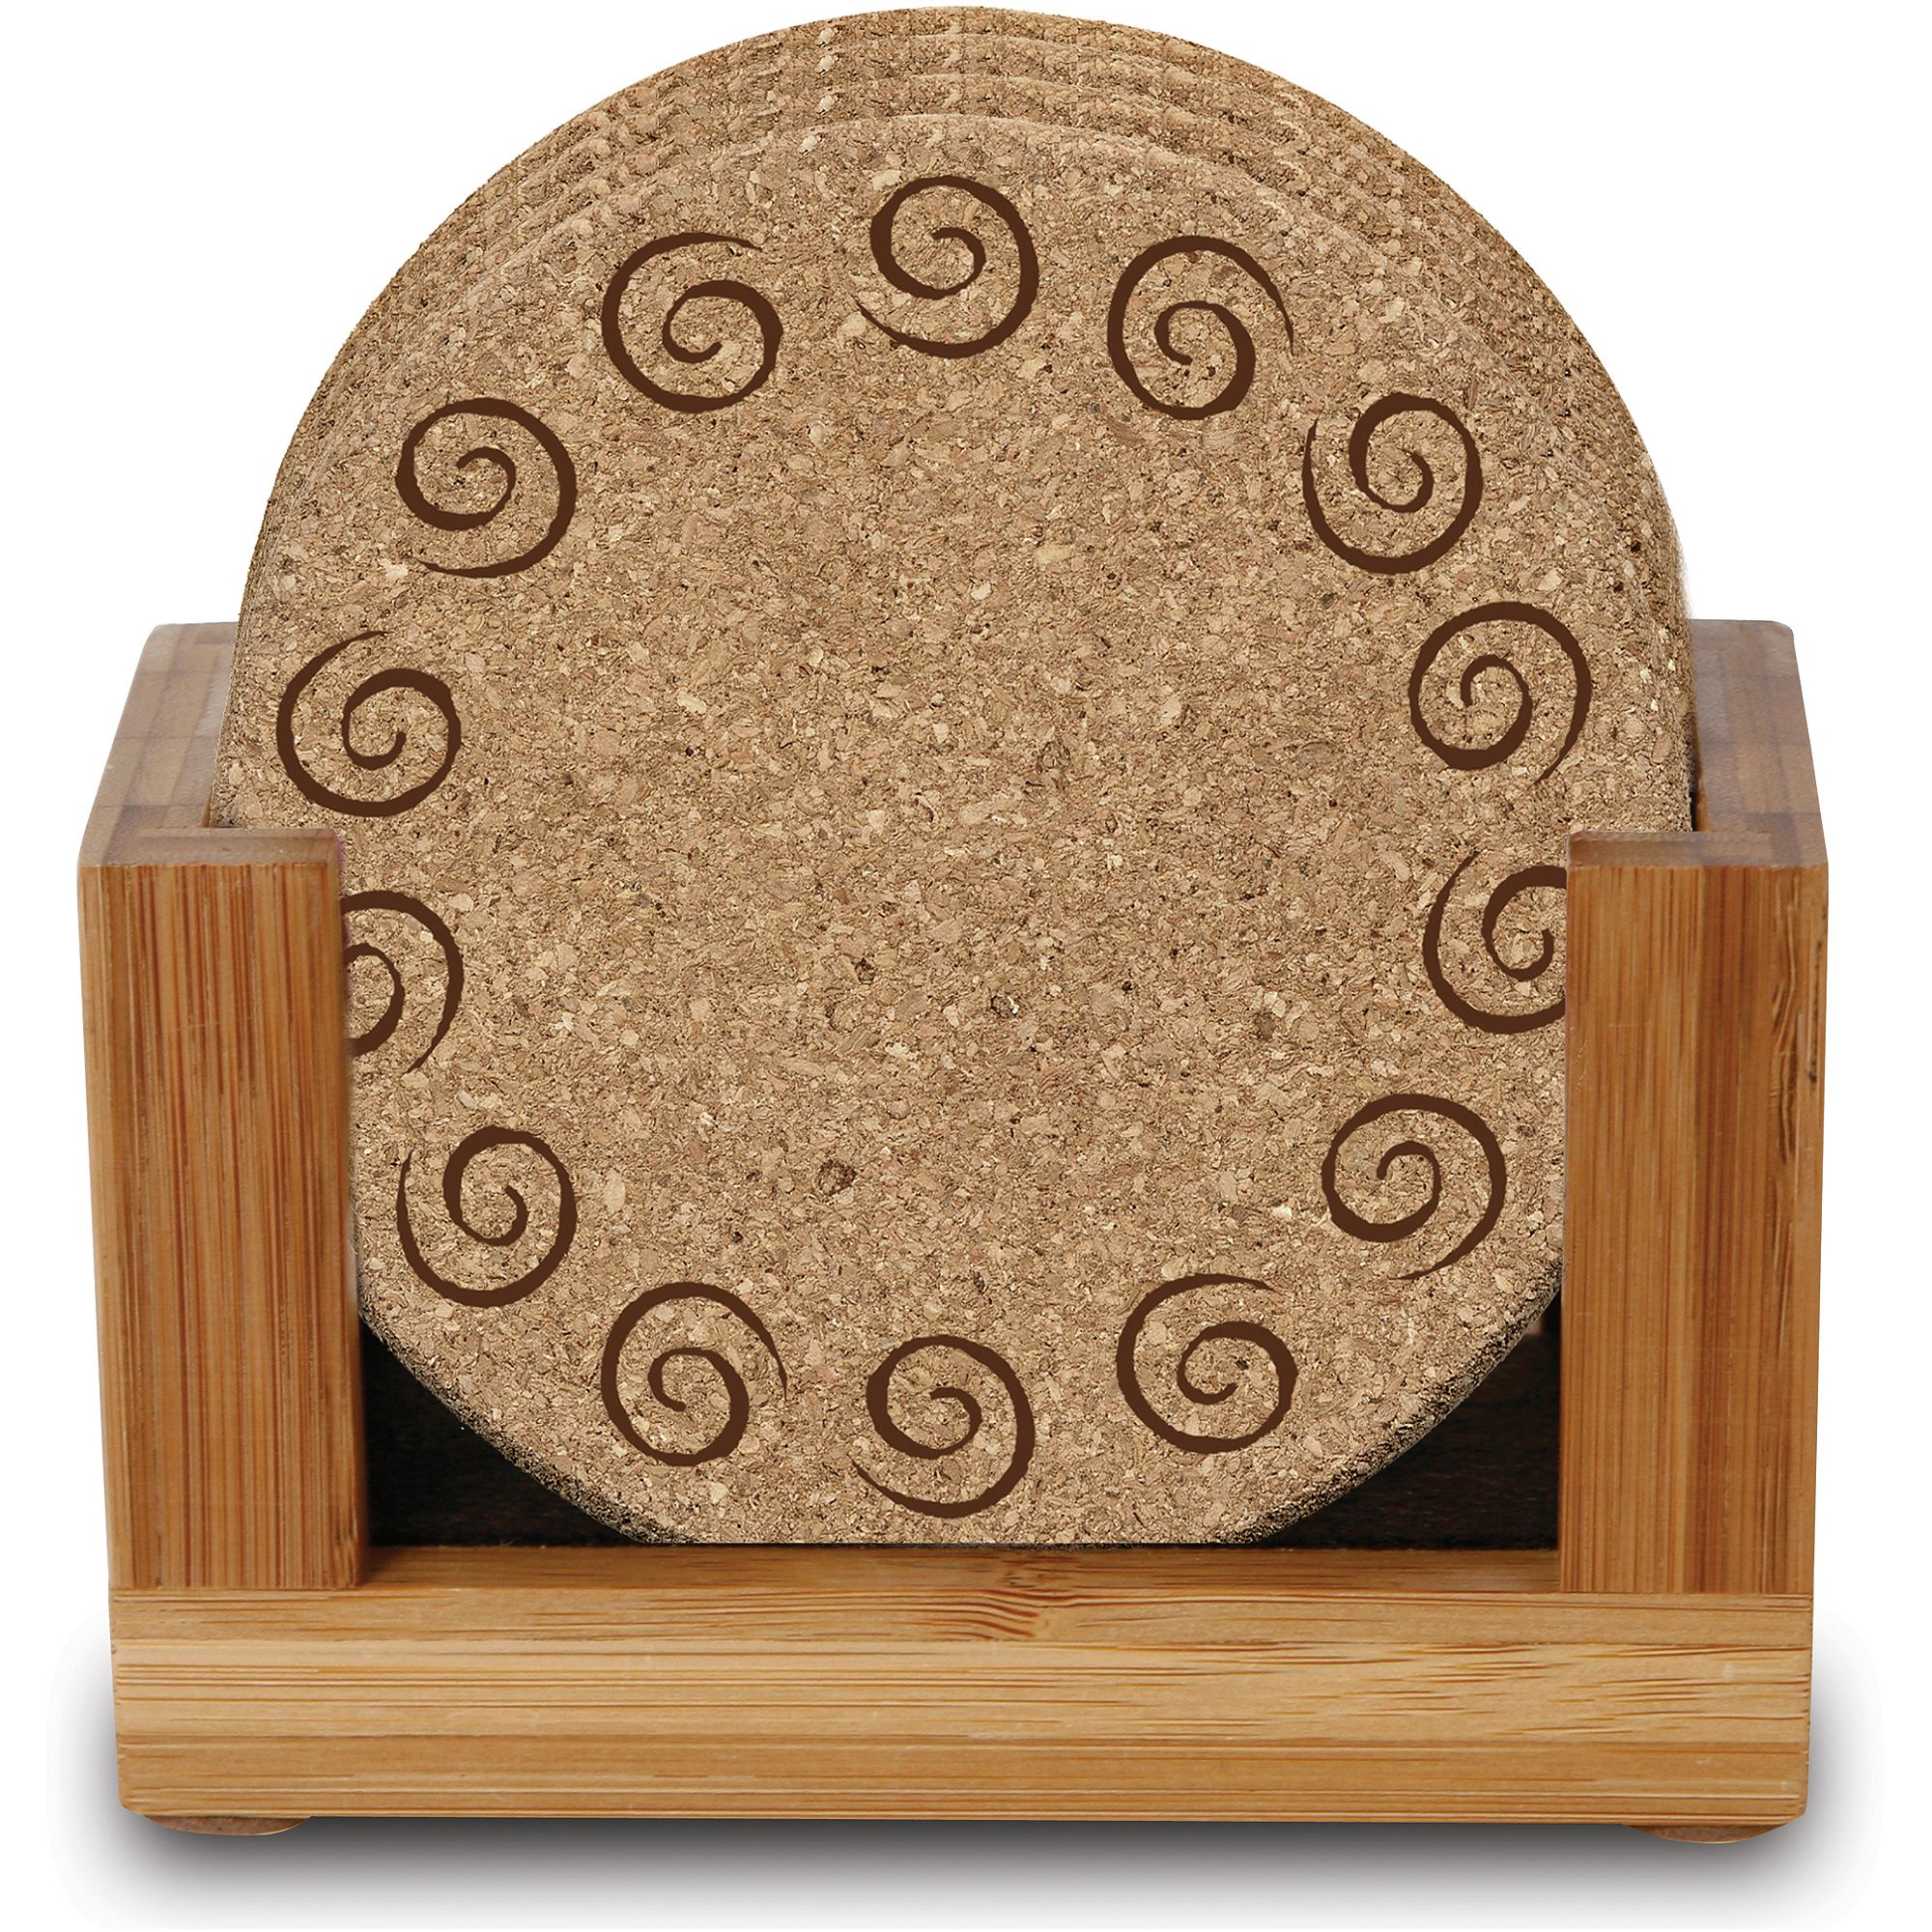 Thirstystone Ambiance Upright Bamboo Holder for Square or Round Drink Coasters